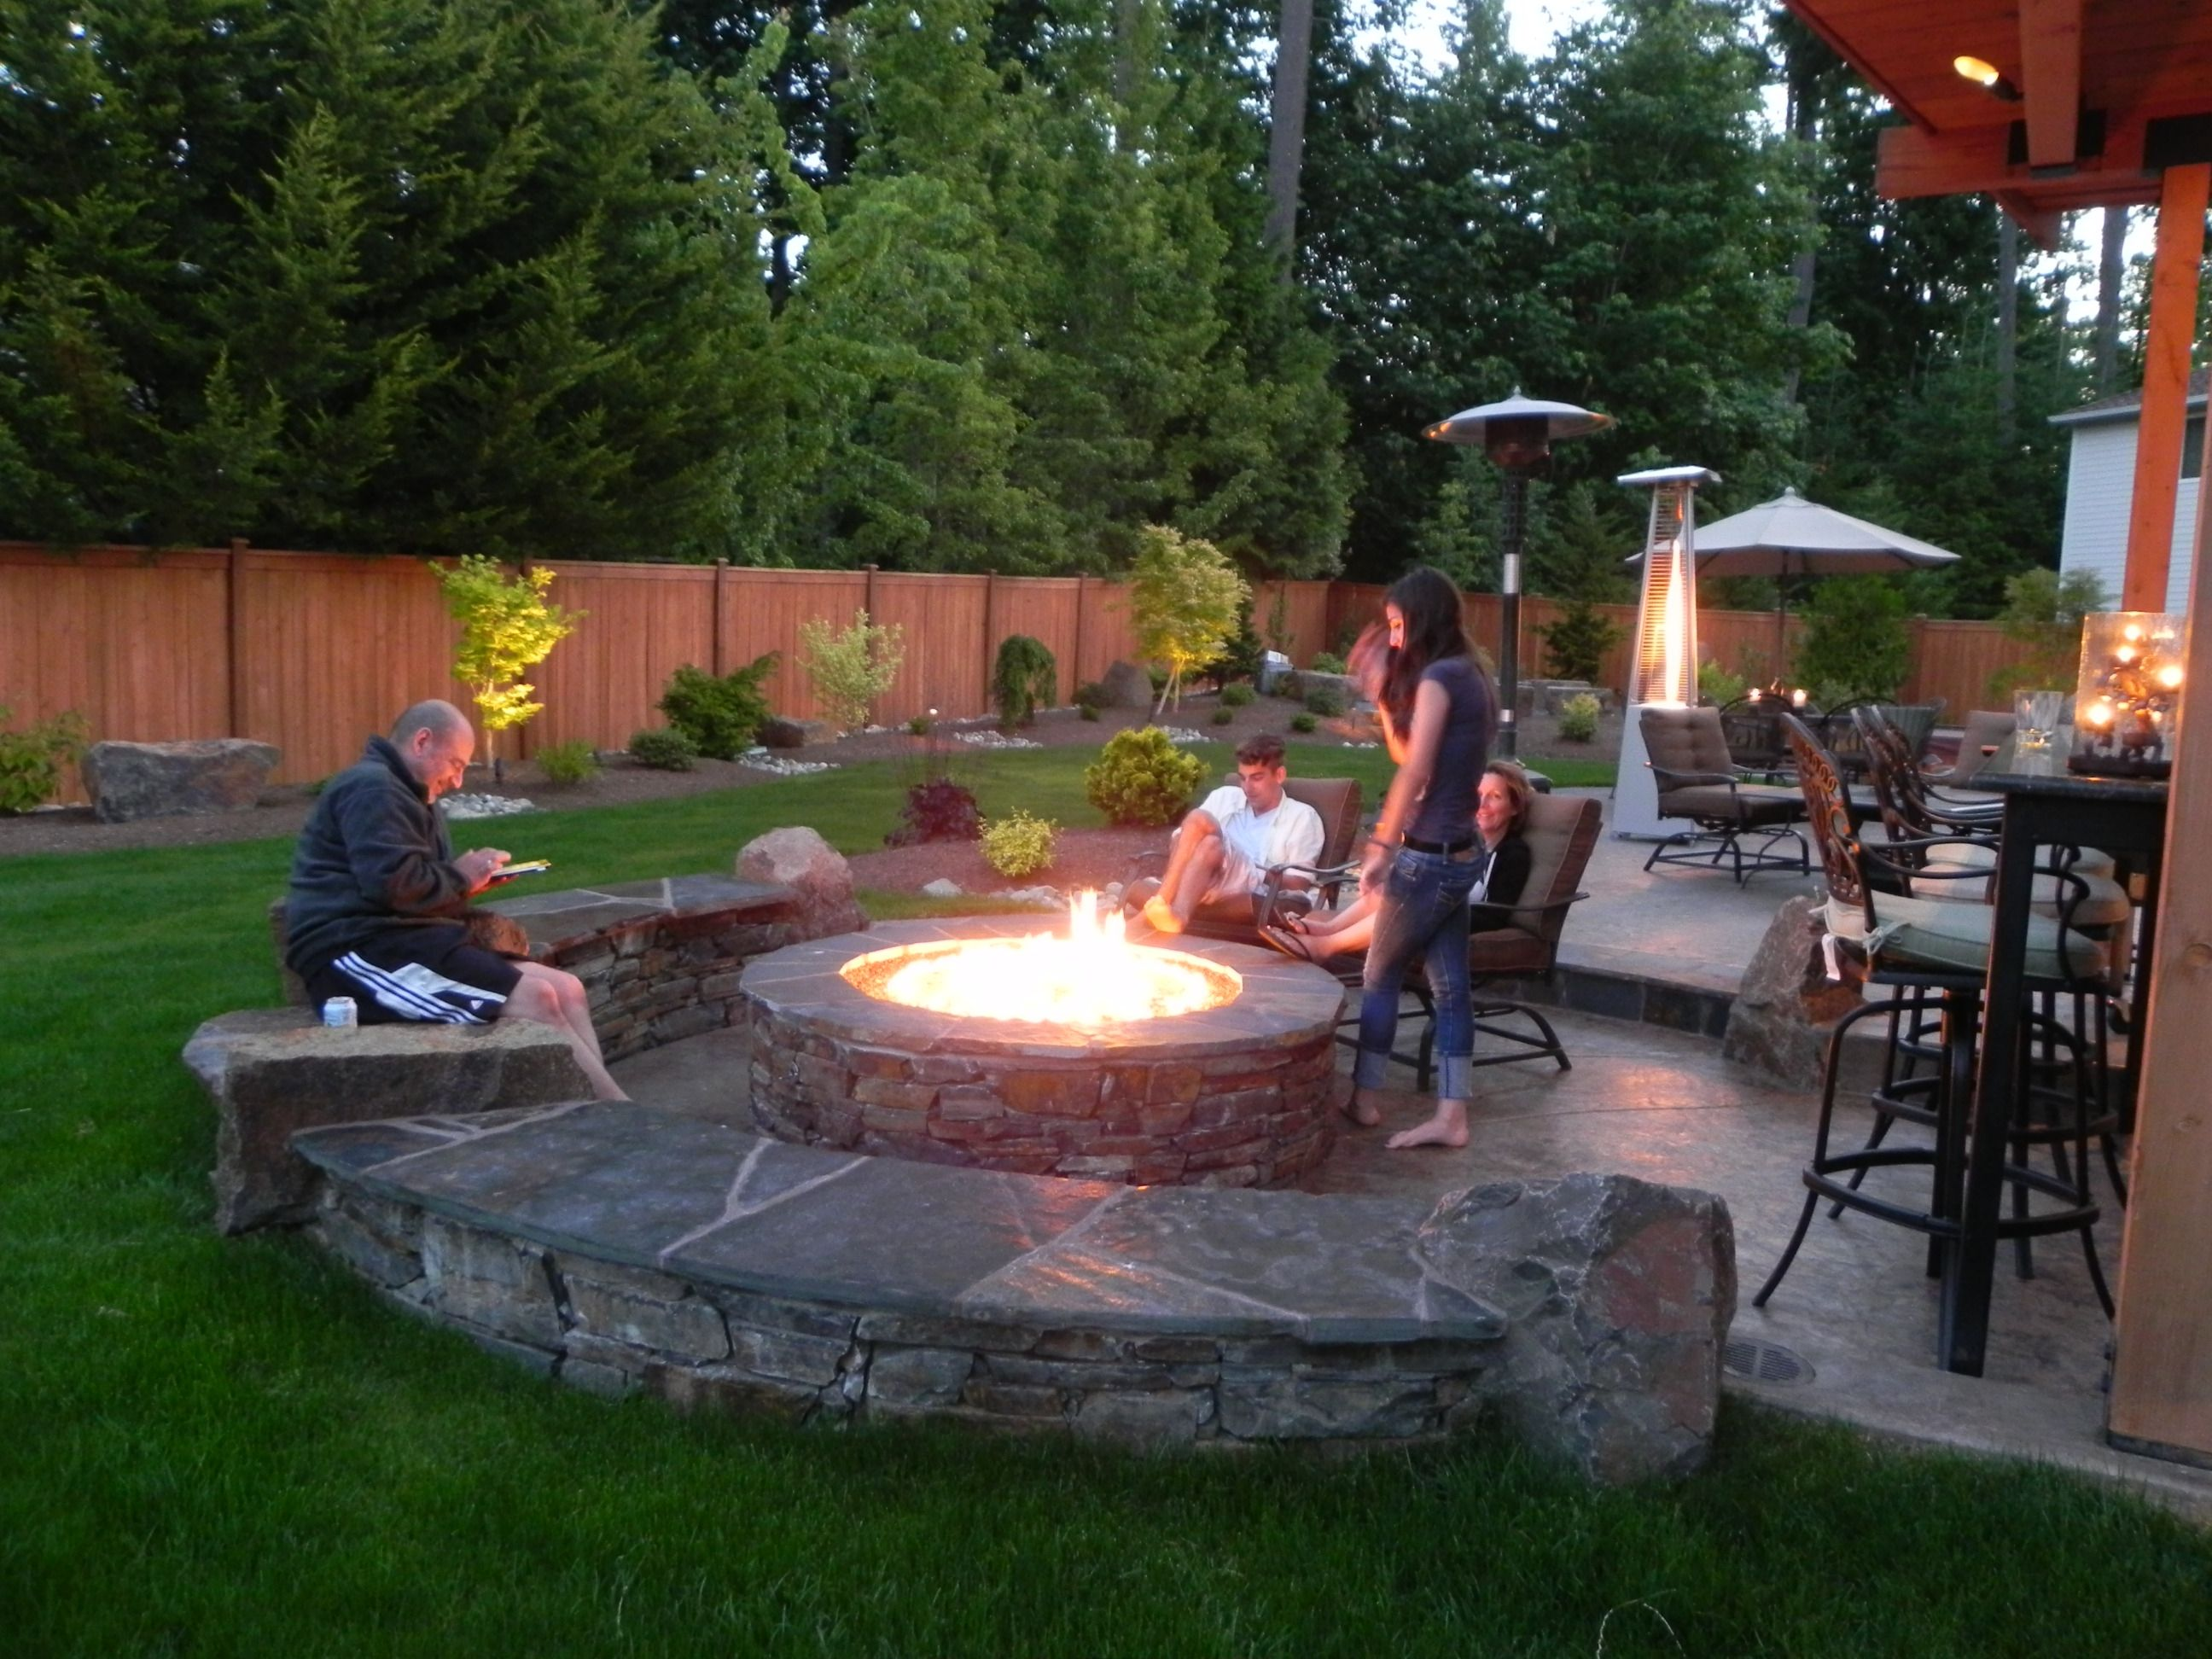 Inspiration For Backyard Fire Pit Designs Gardens Fire Pits And